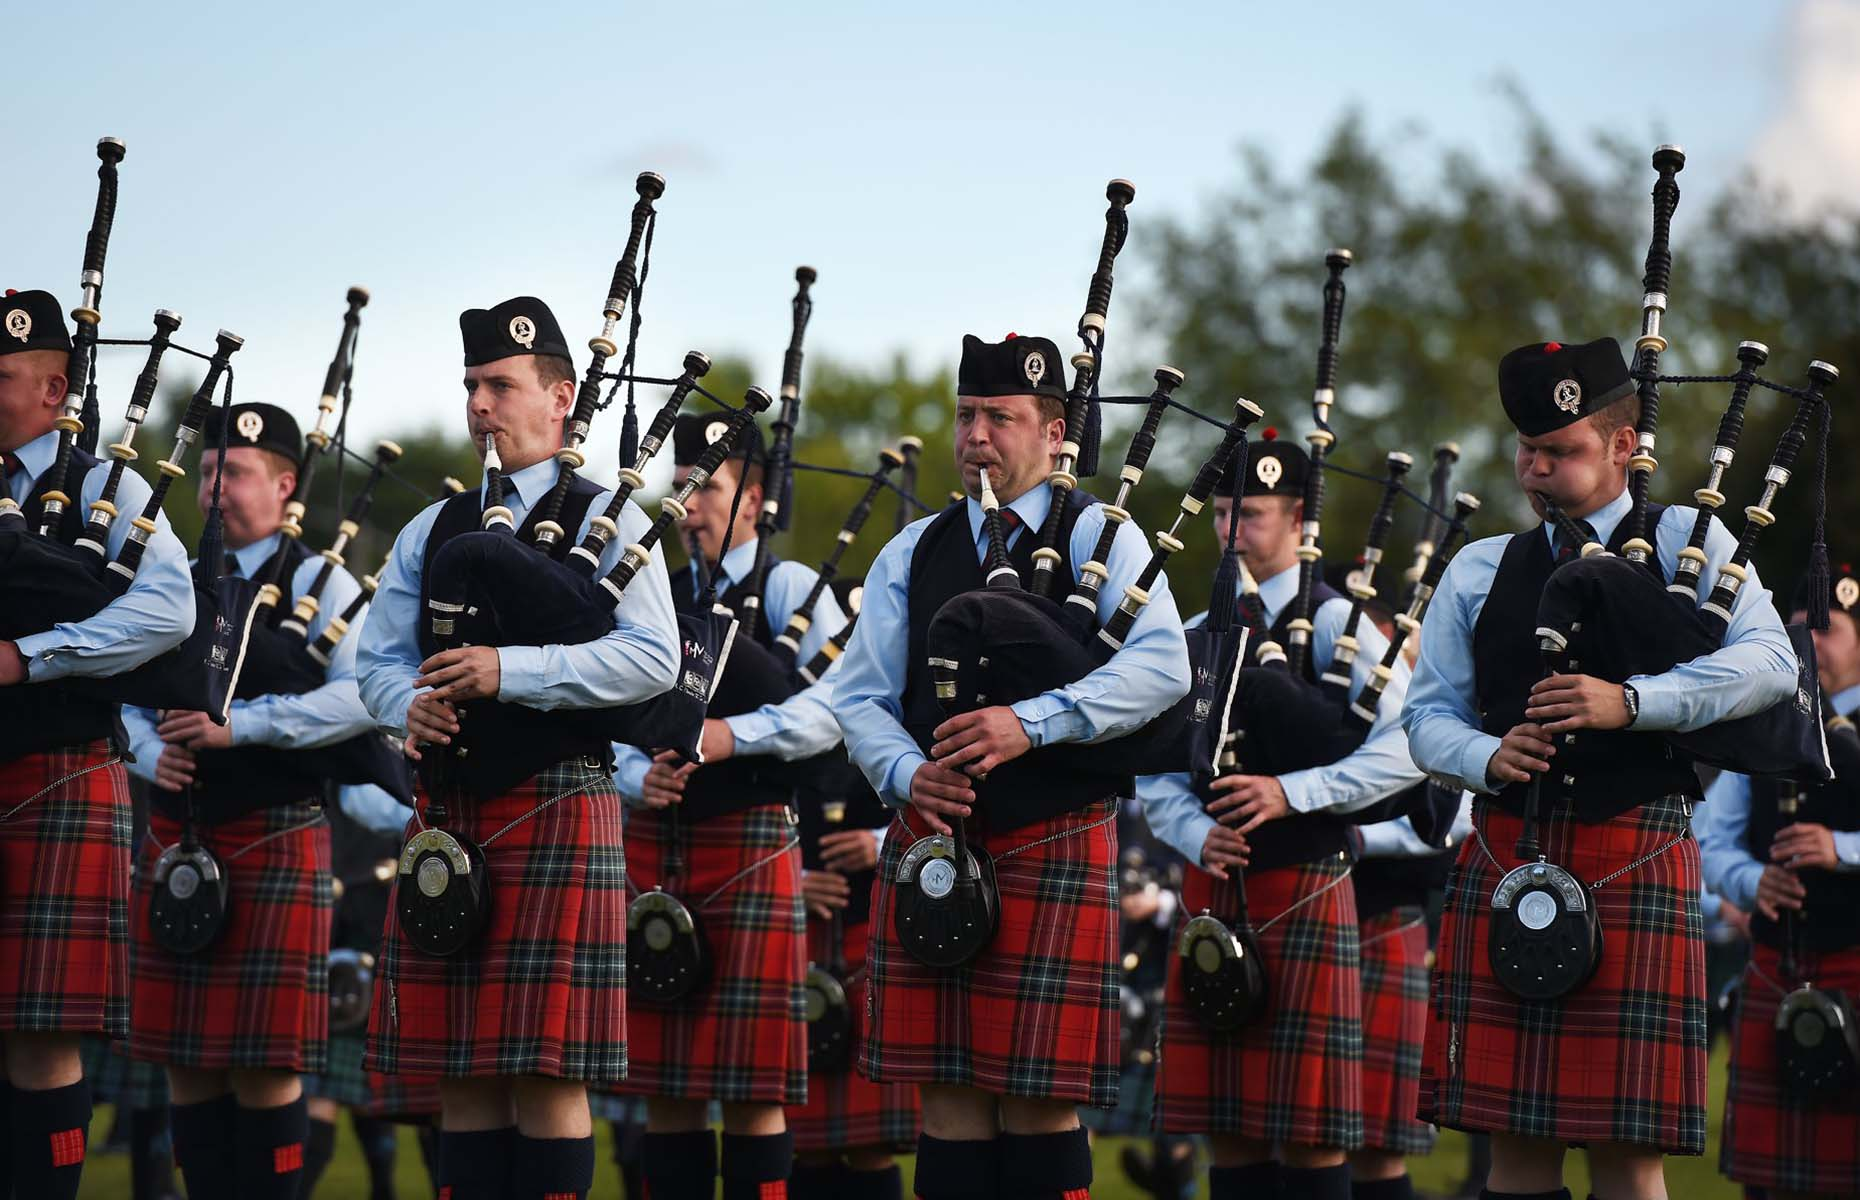 World Pipe Band Championships in Scotland (Image: World Pipe Band Championships/Facebook)